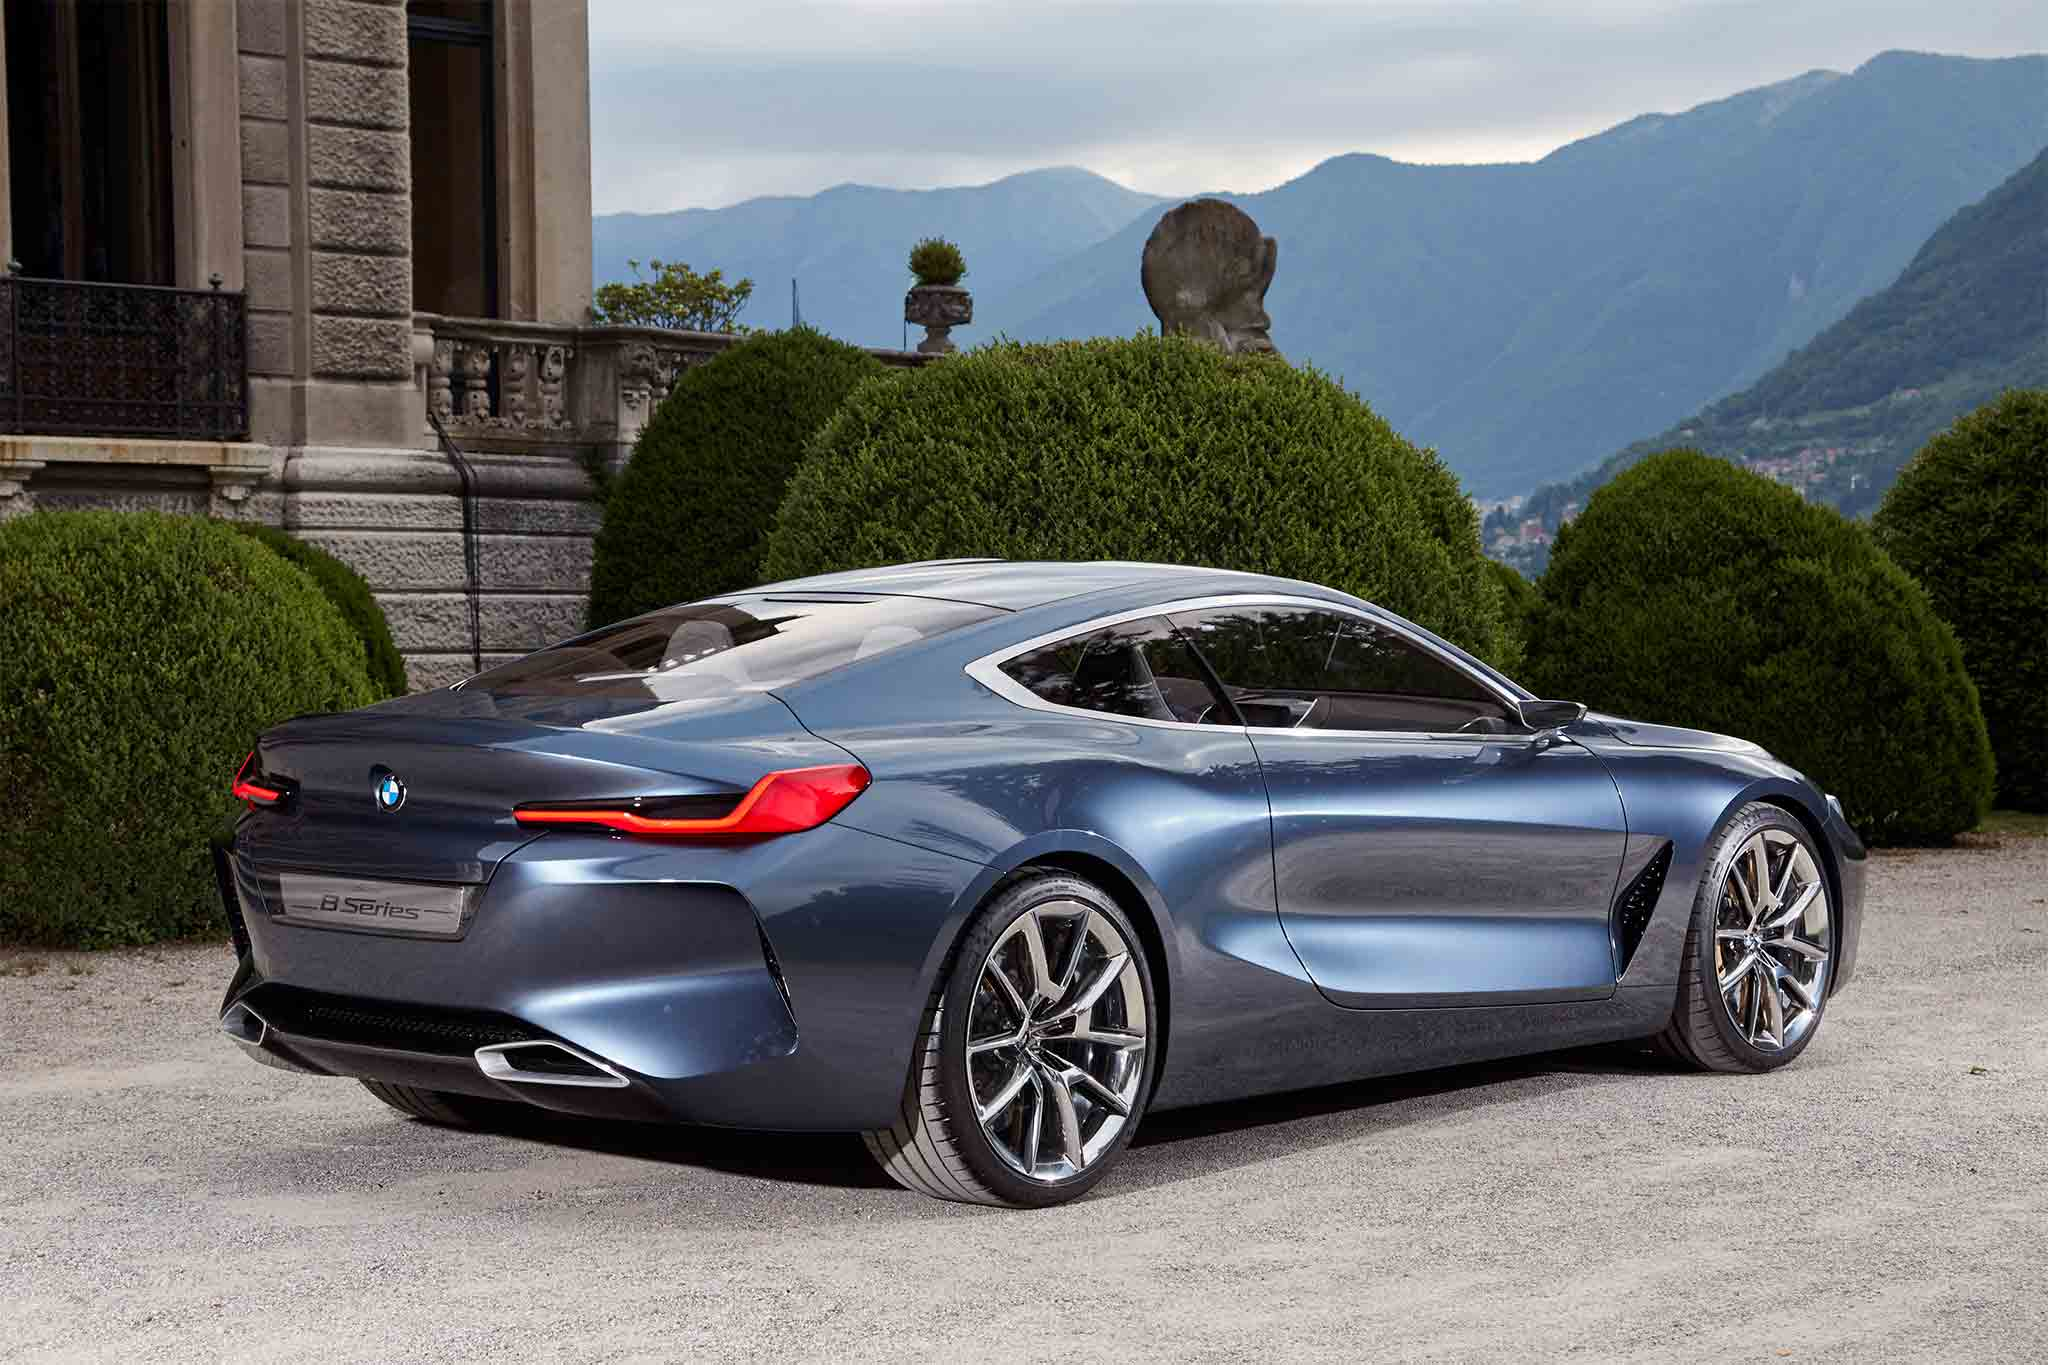 48 New 2020 Bmw 8 Series Price Release Date with 2020 Bmw 8 Series Price